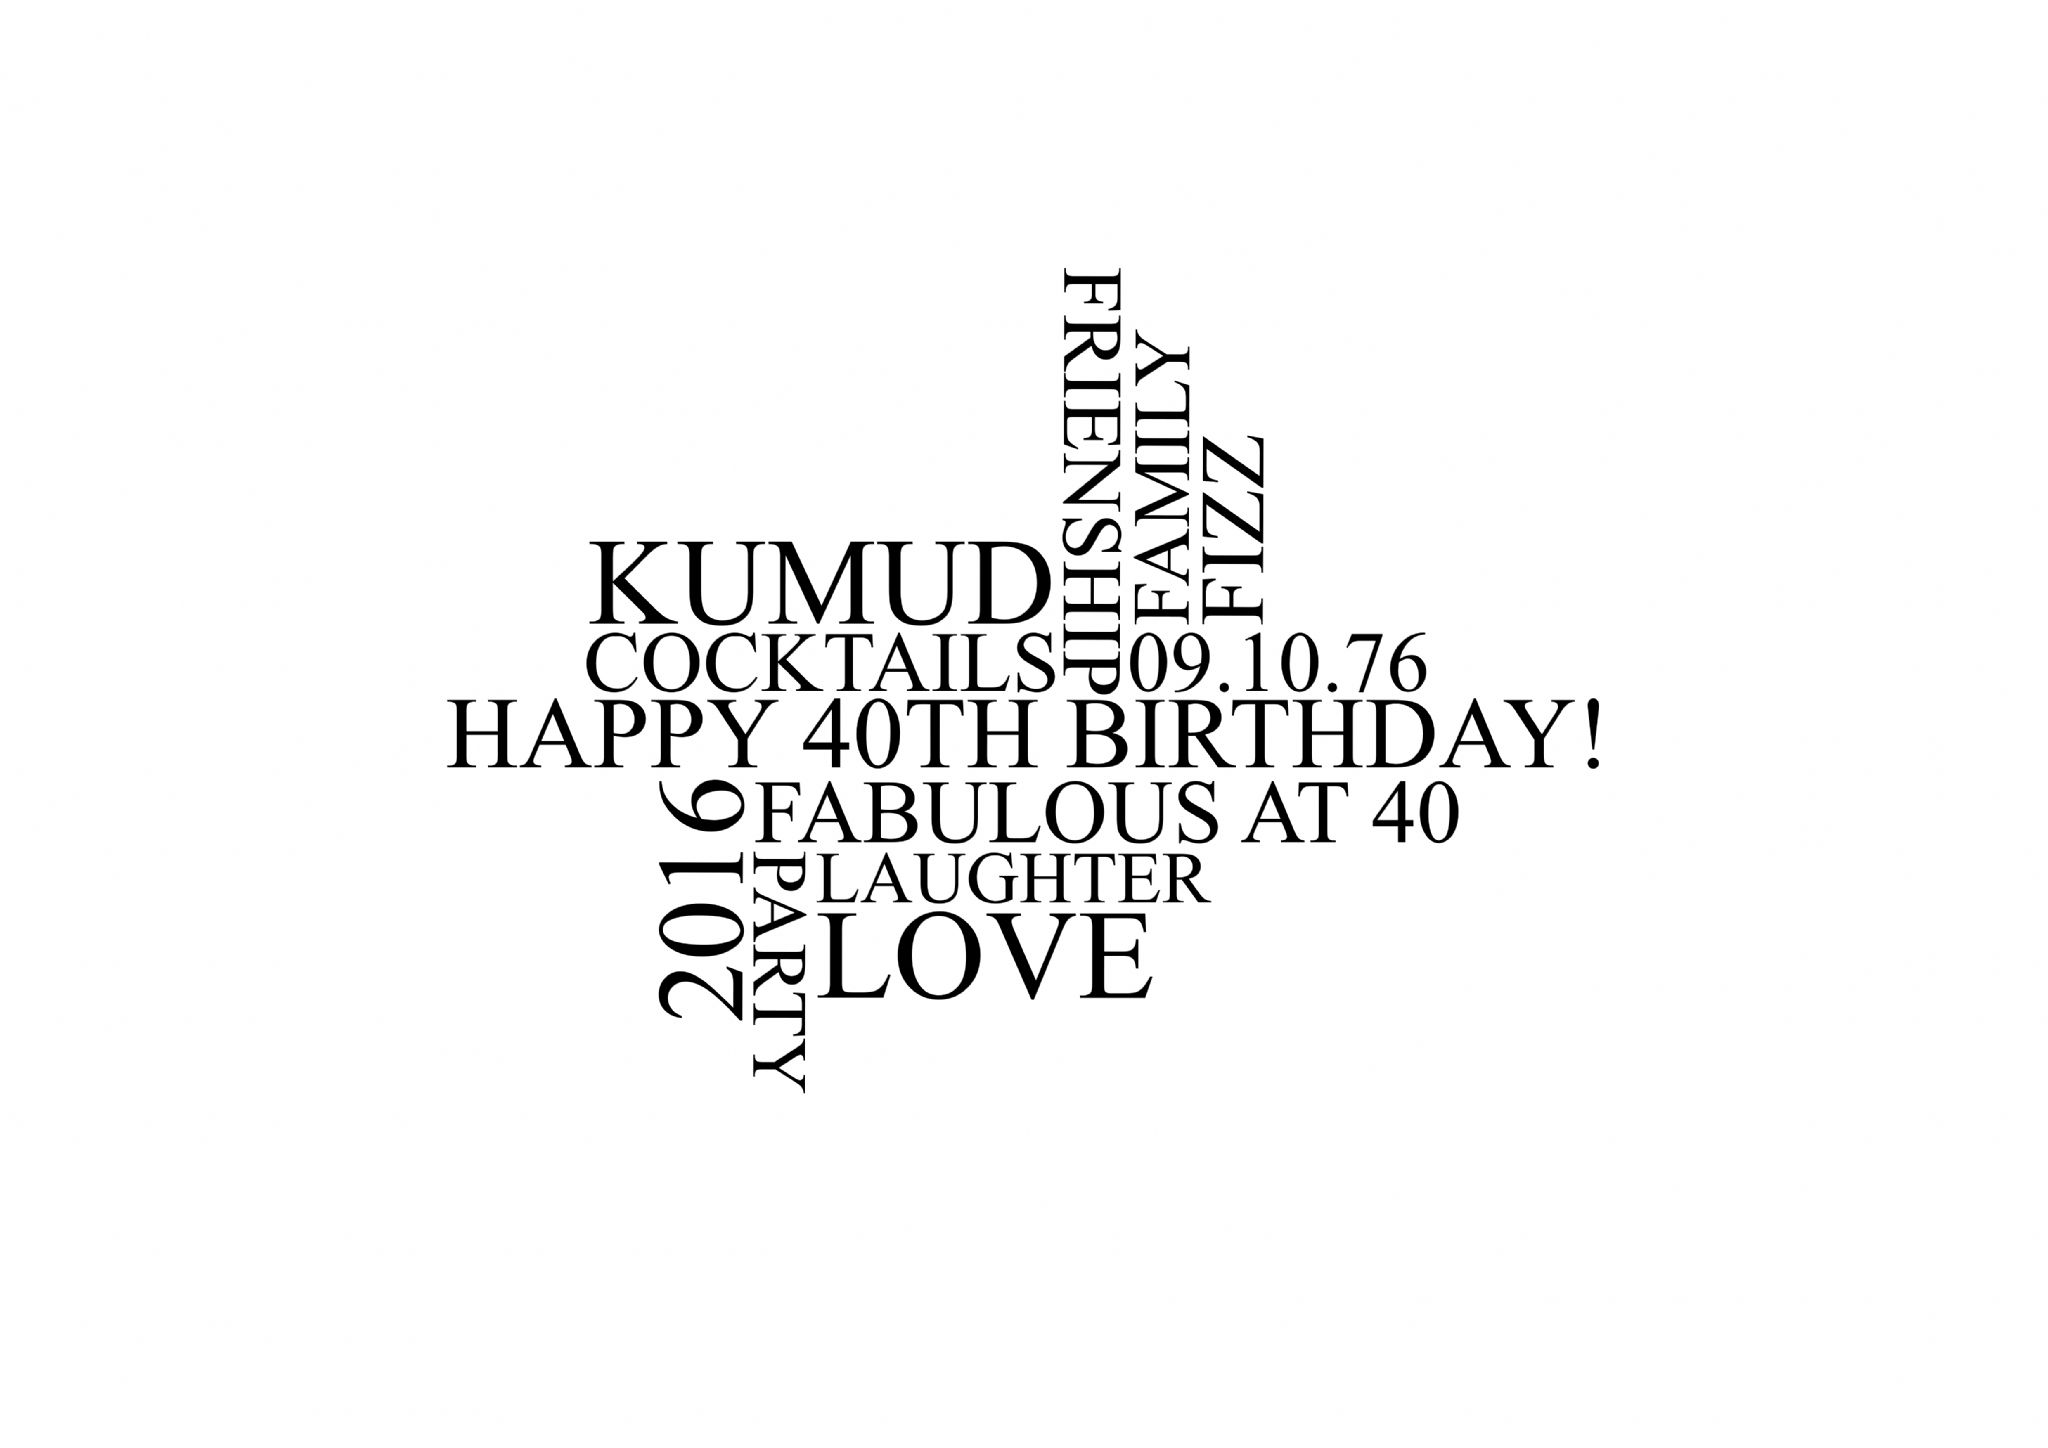 40th birthday signature photo frame ; personalised-signature-signing-frame-%5b2%5d-661-p